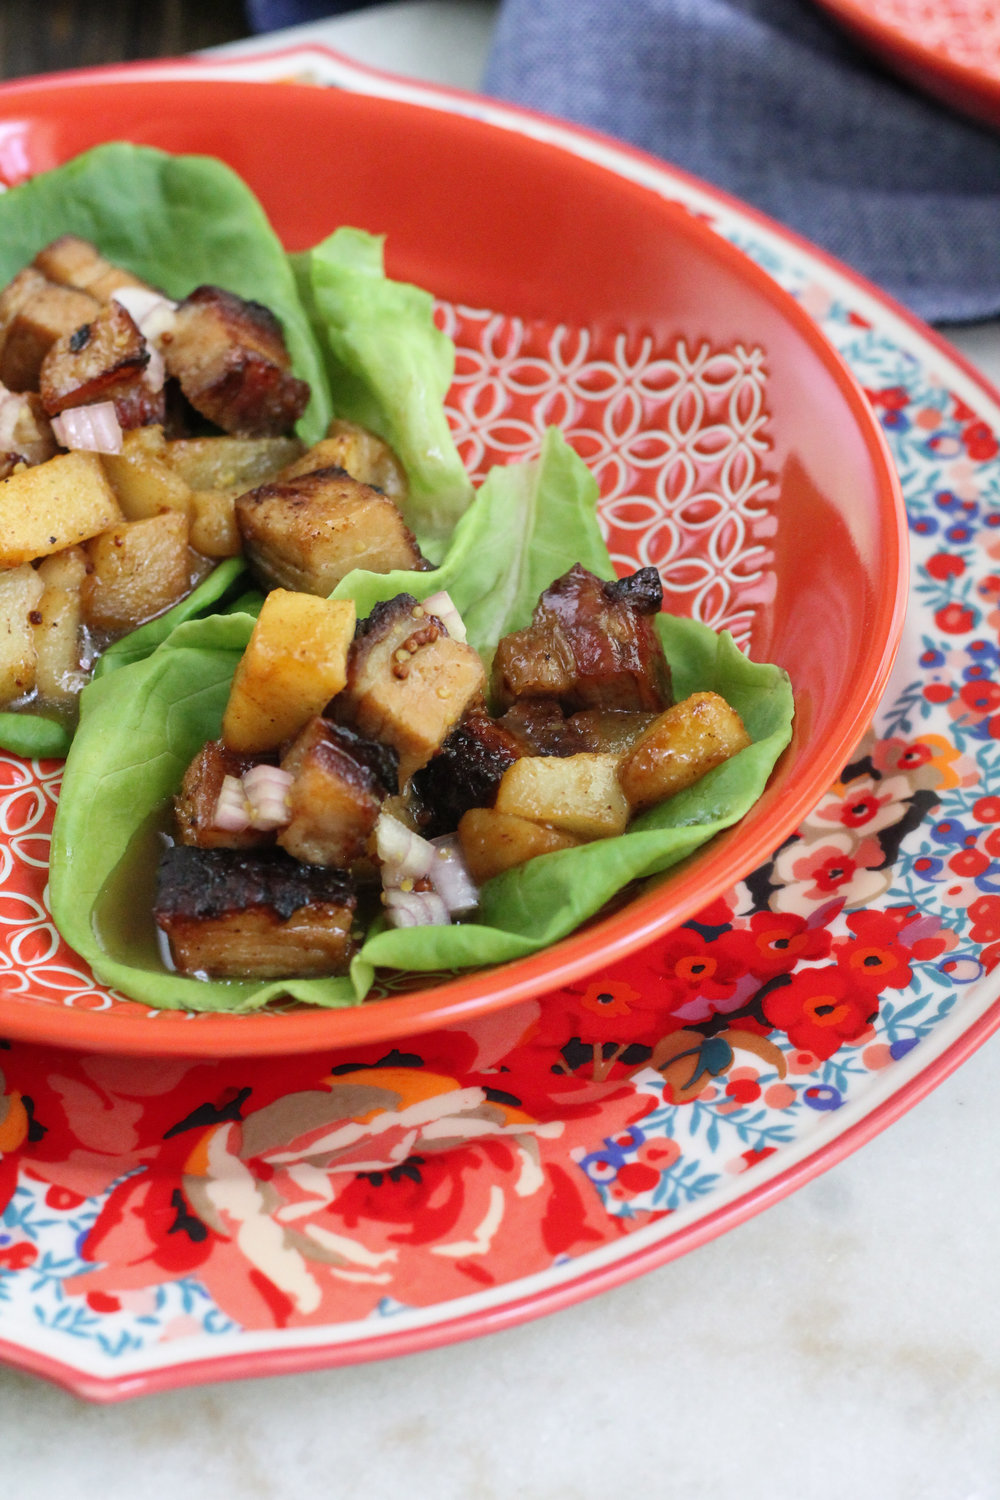 You've never had a lettuce wrap until you've tried these pork belly & pear lettuce wraps with apple cider vinaigrette.  [ www.pedanticfoodie.com ]